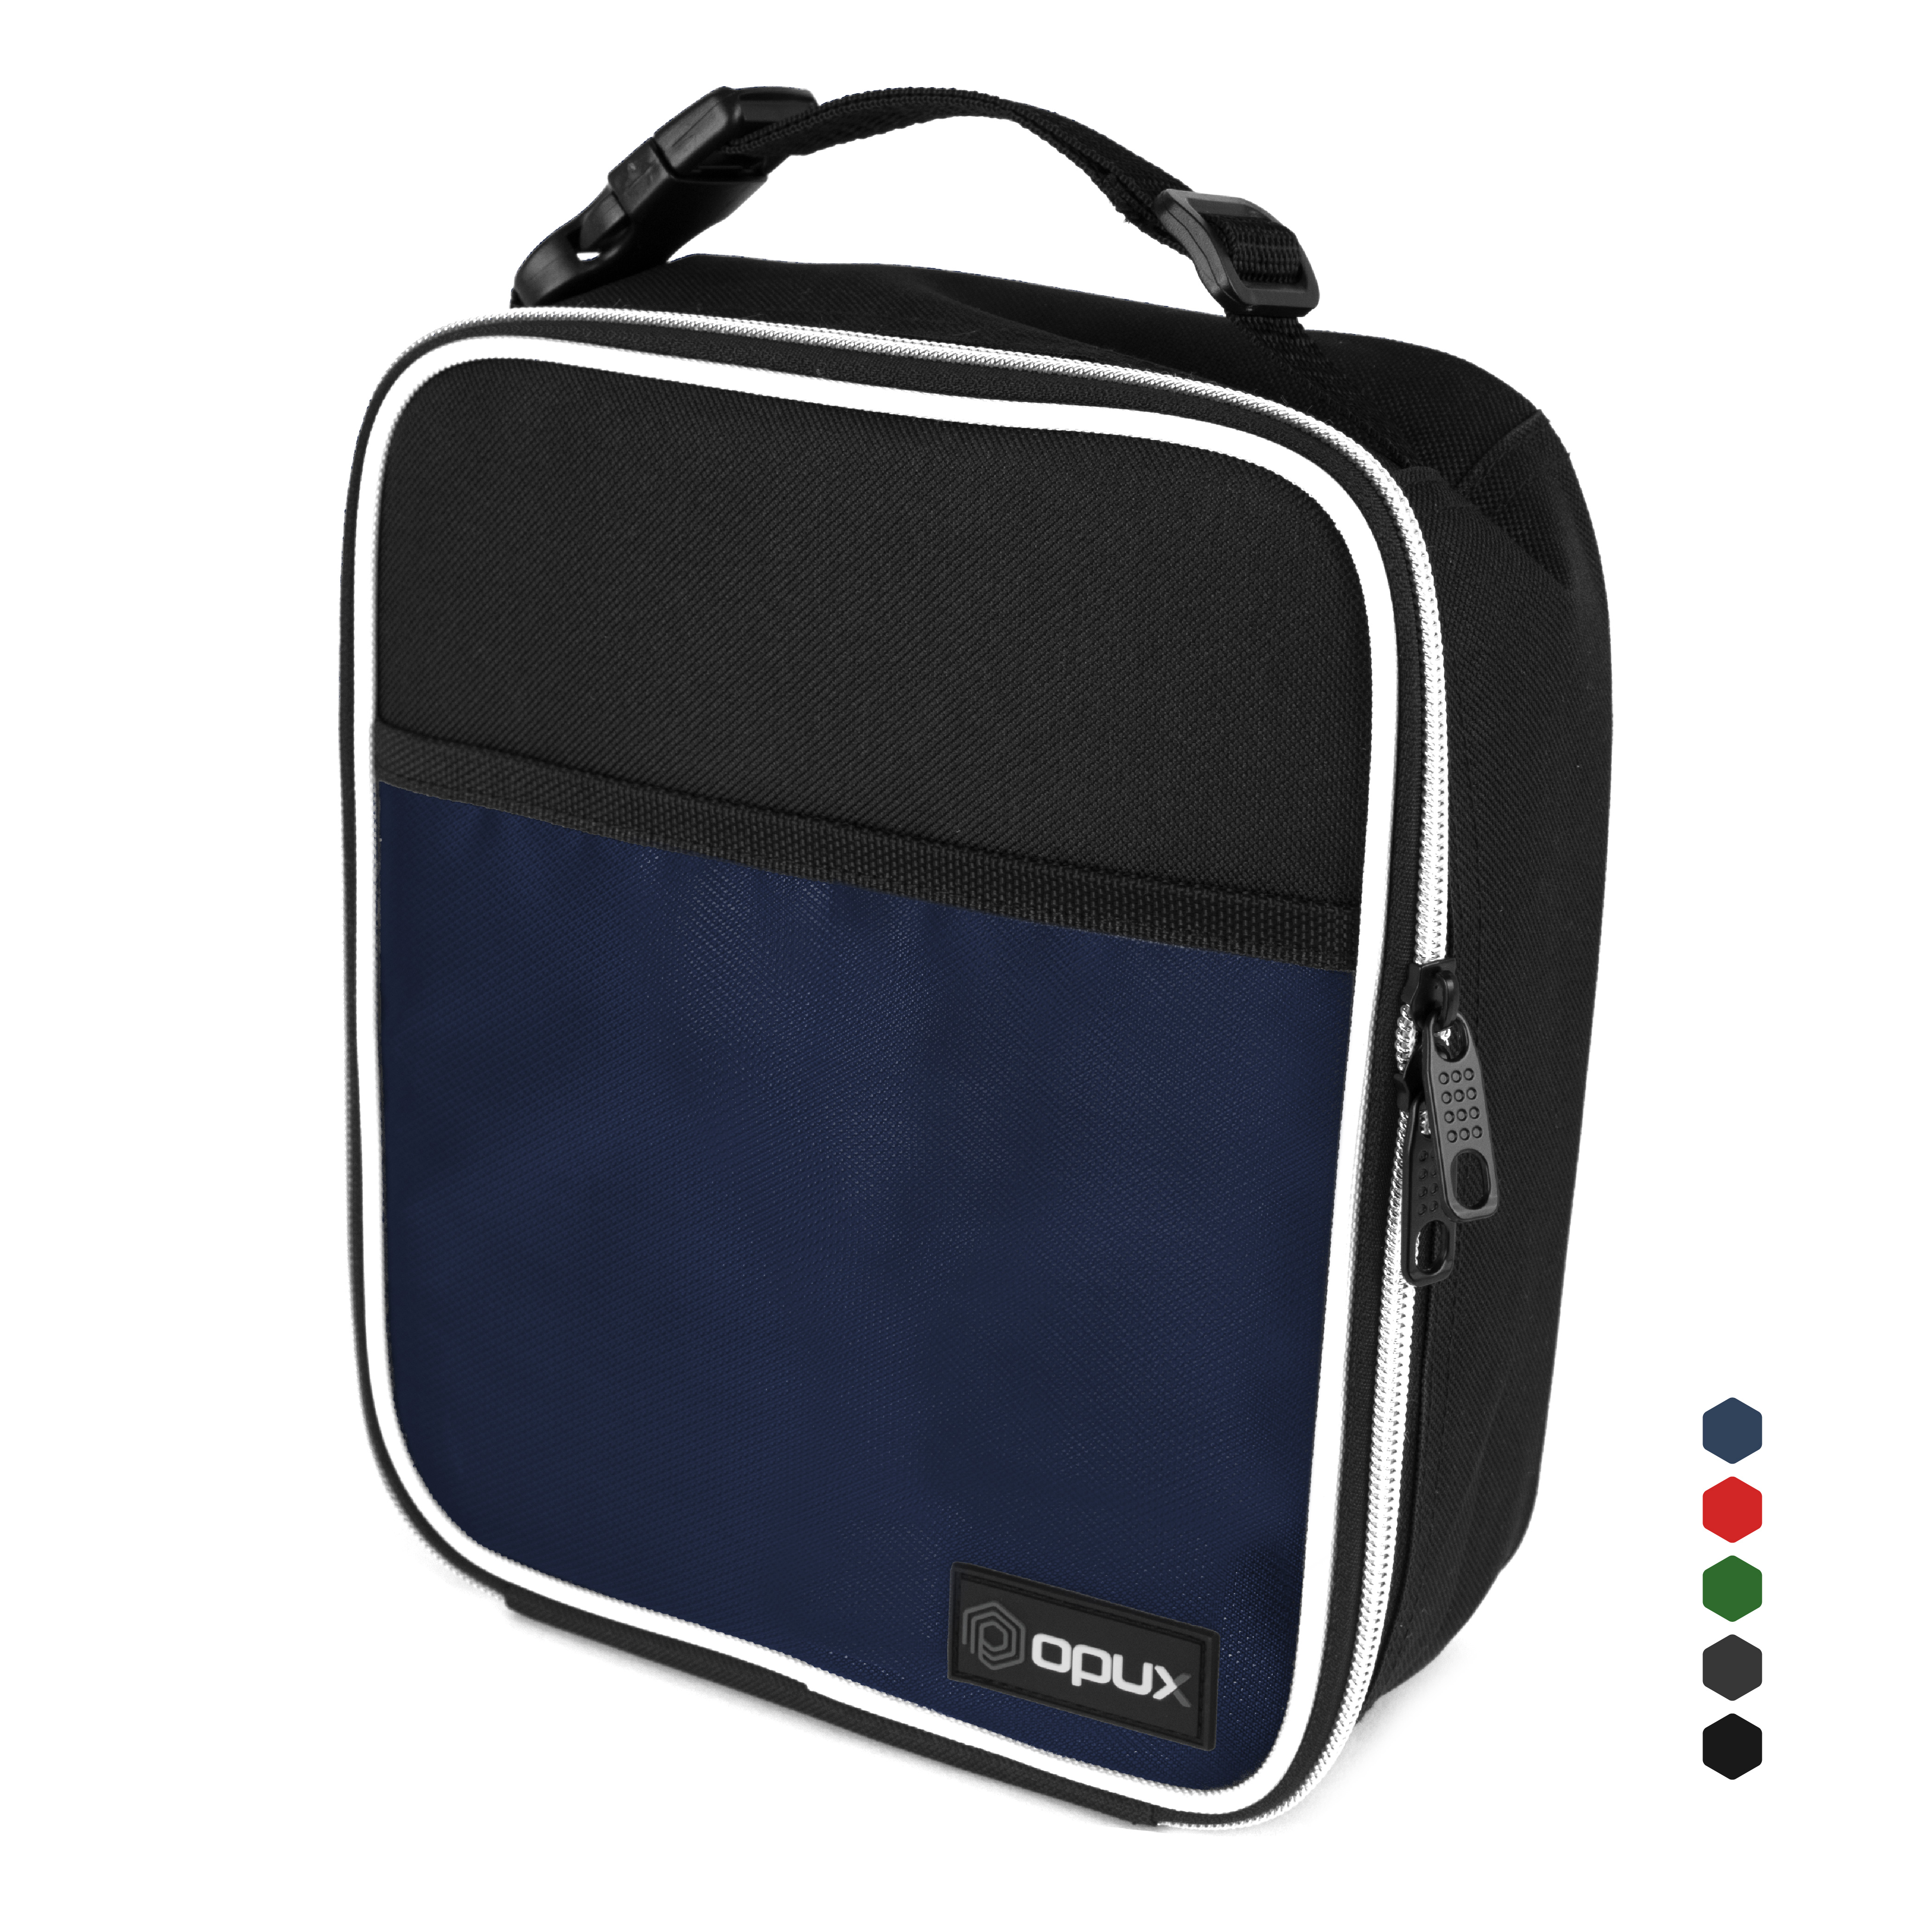 Well-Insulated Small Cooling Lunch Bag by OPUX - Navy